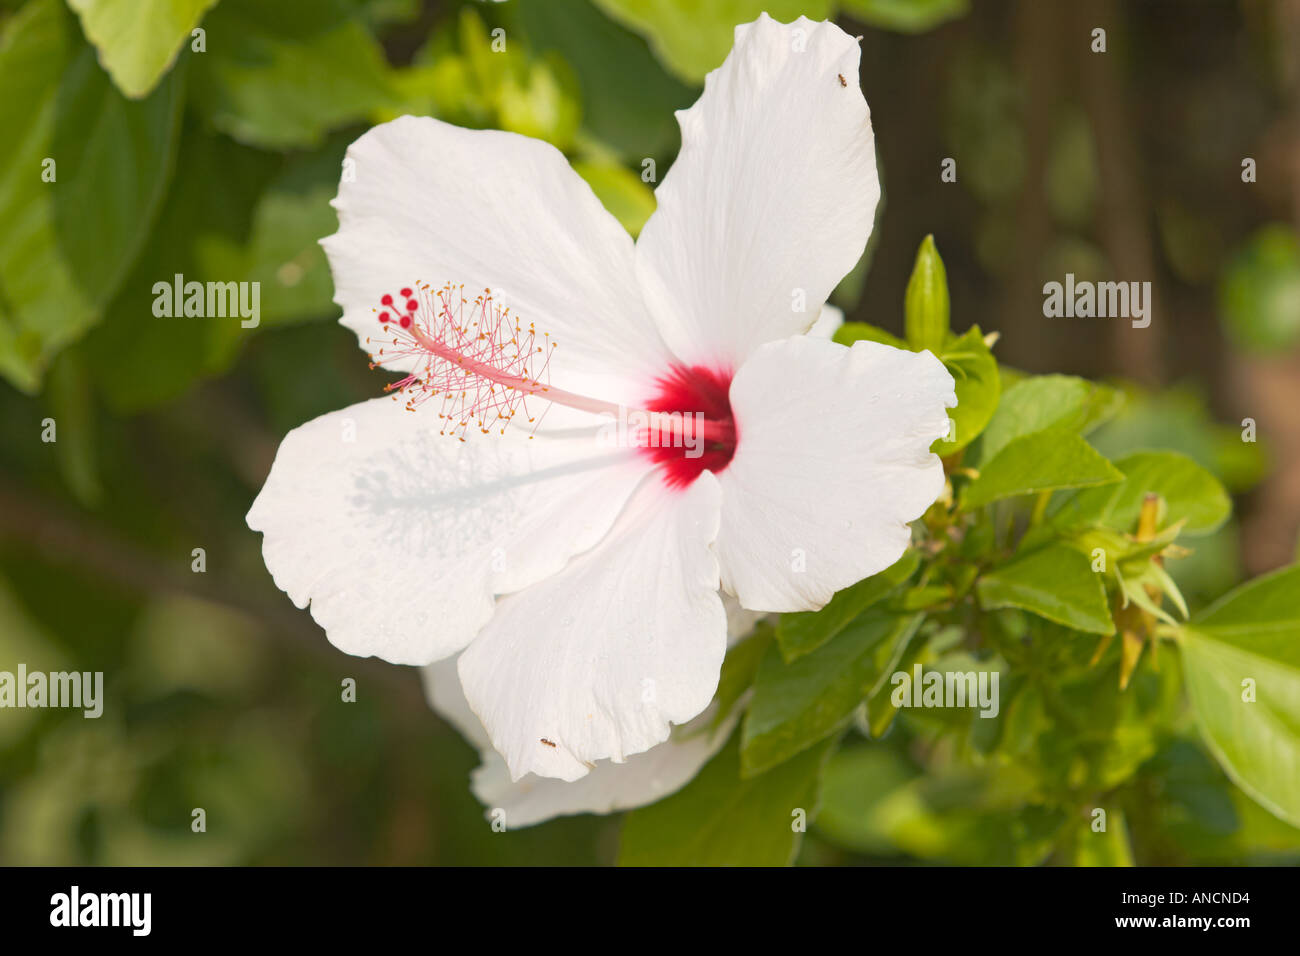 White hibiscus flower scientific name hibiscus rosa sinensis white hibiscus flower scientific name hibiscus rosa sinensis corfu island greece izmirmasajfo Image collections